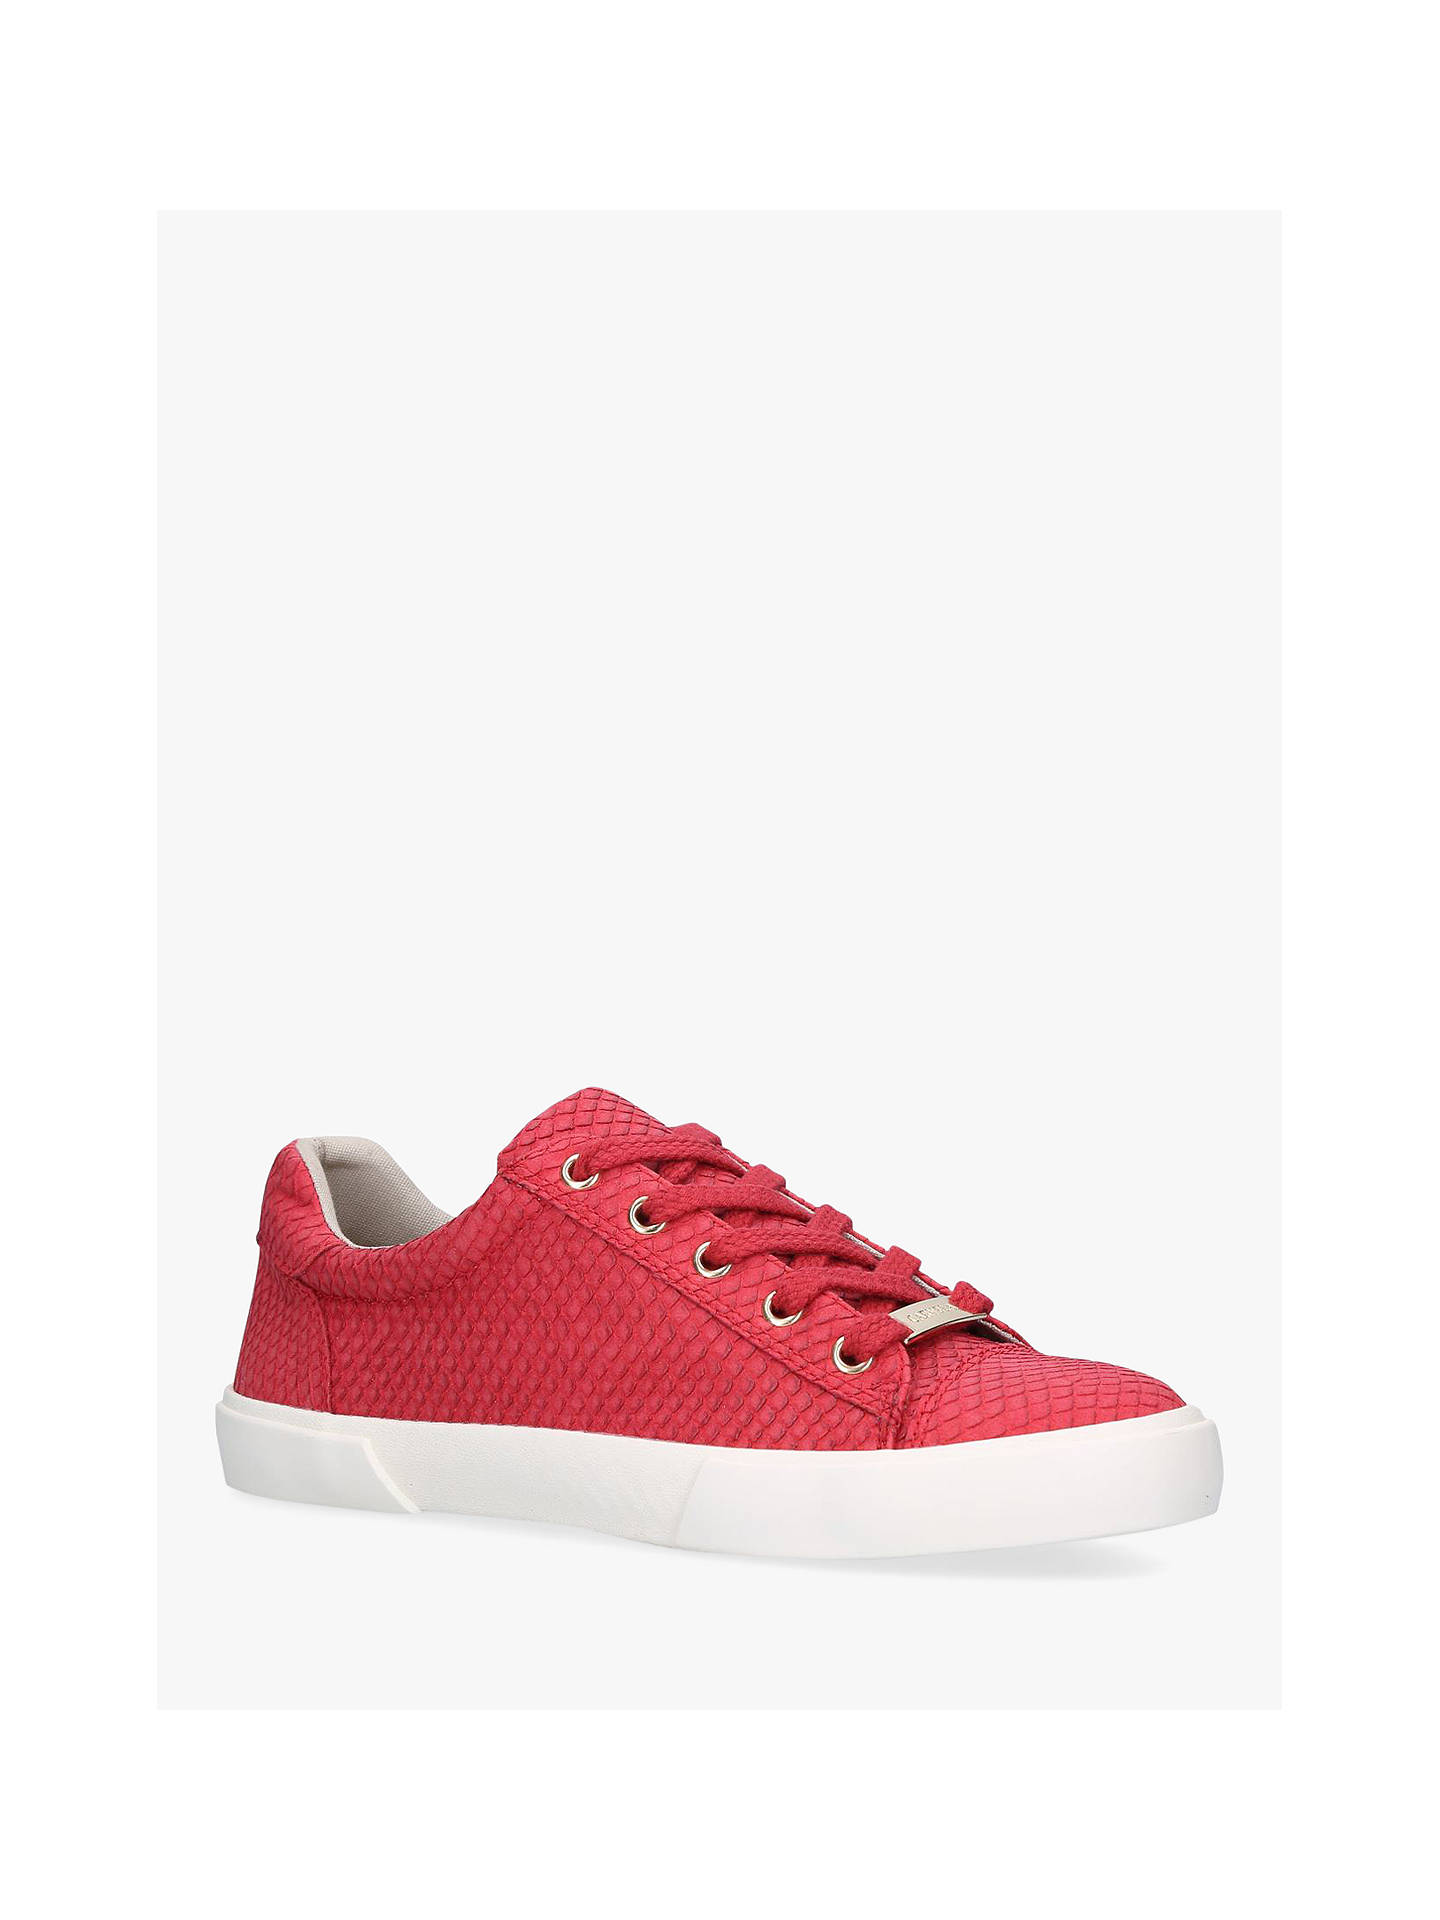 Buy Carvela Light Lace Up Trainers, Red, 3 Online at johnlewis.com